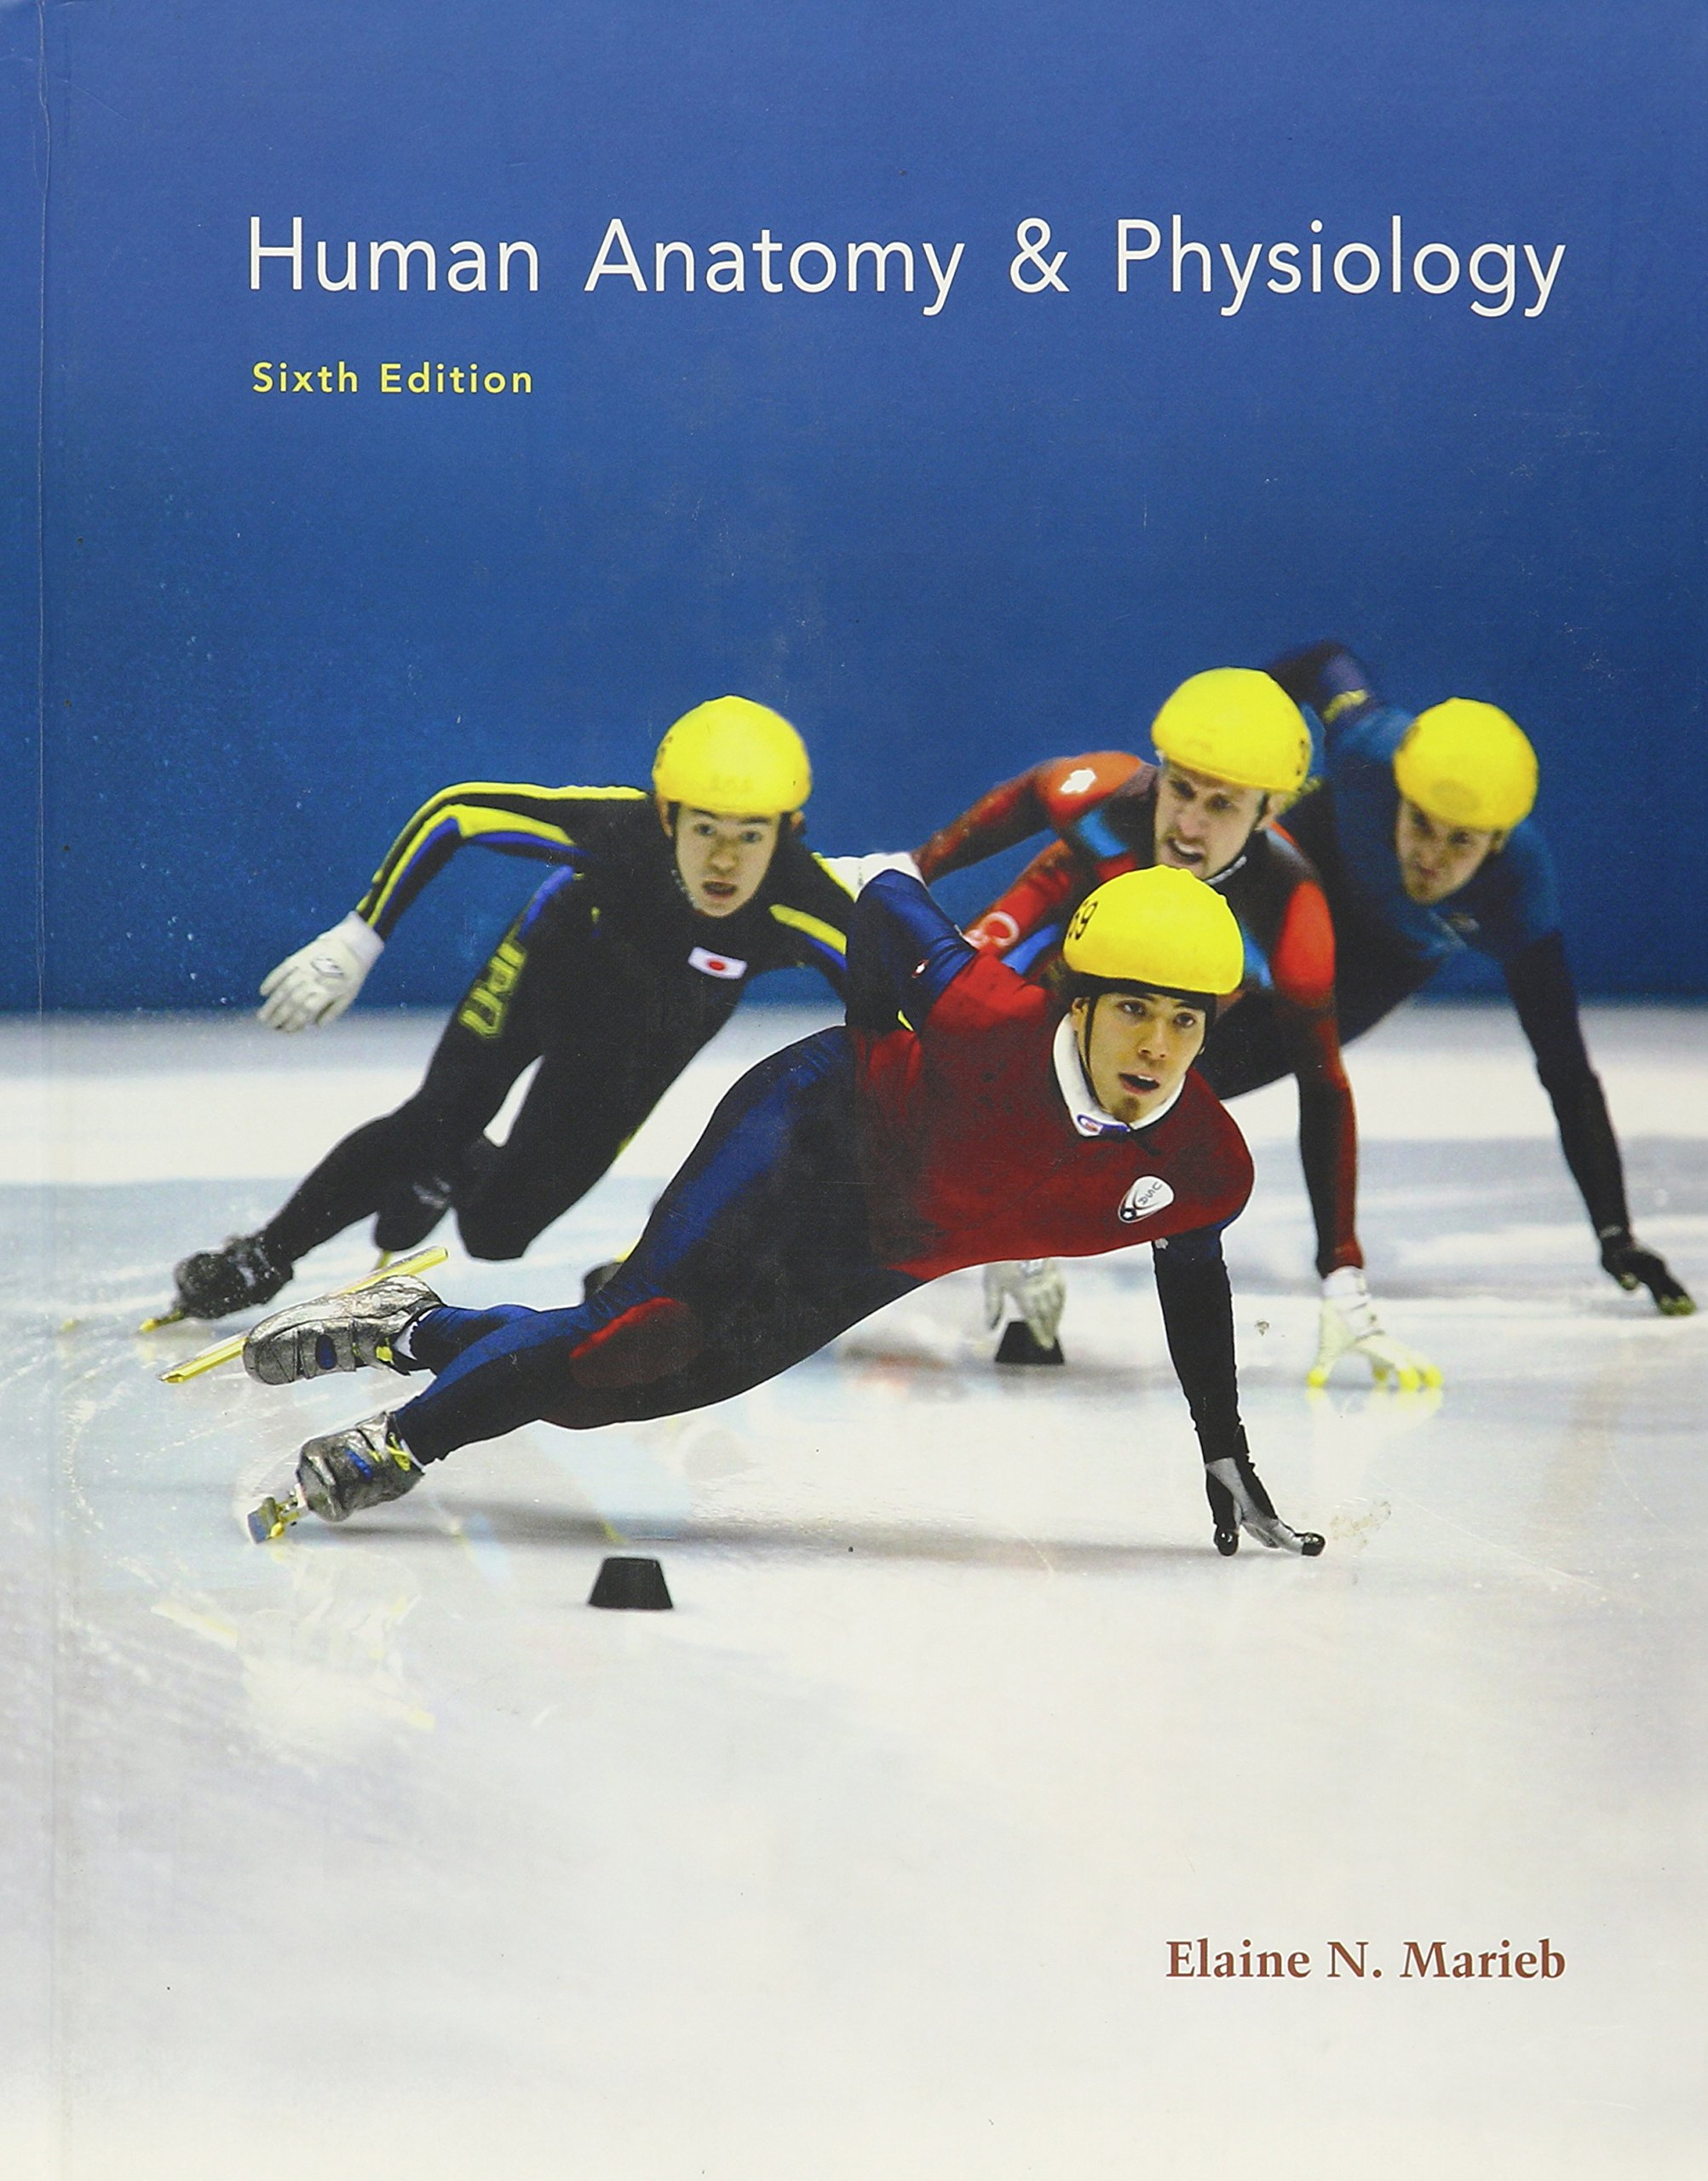 Human Anatomy And Physiology Amazon Elaine N Marieb